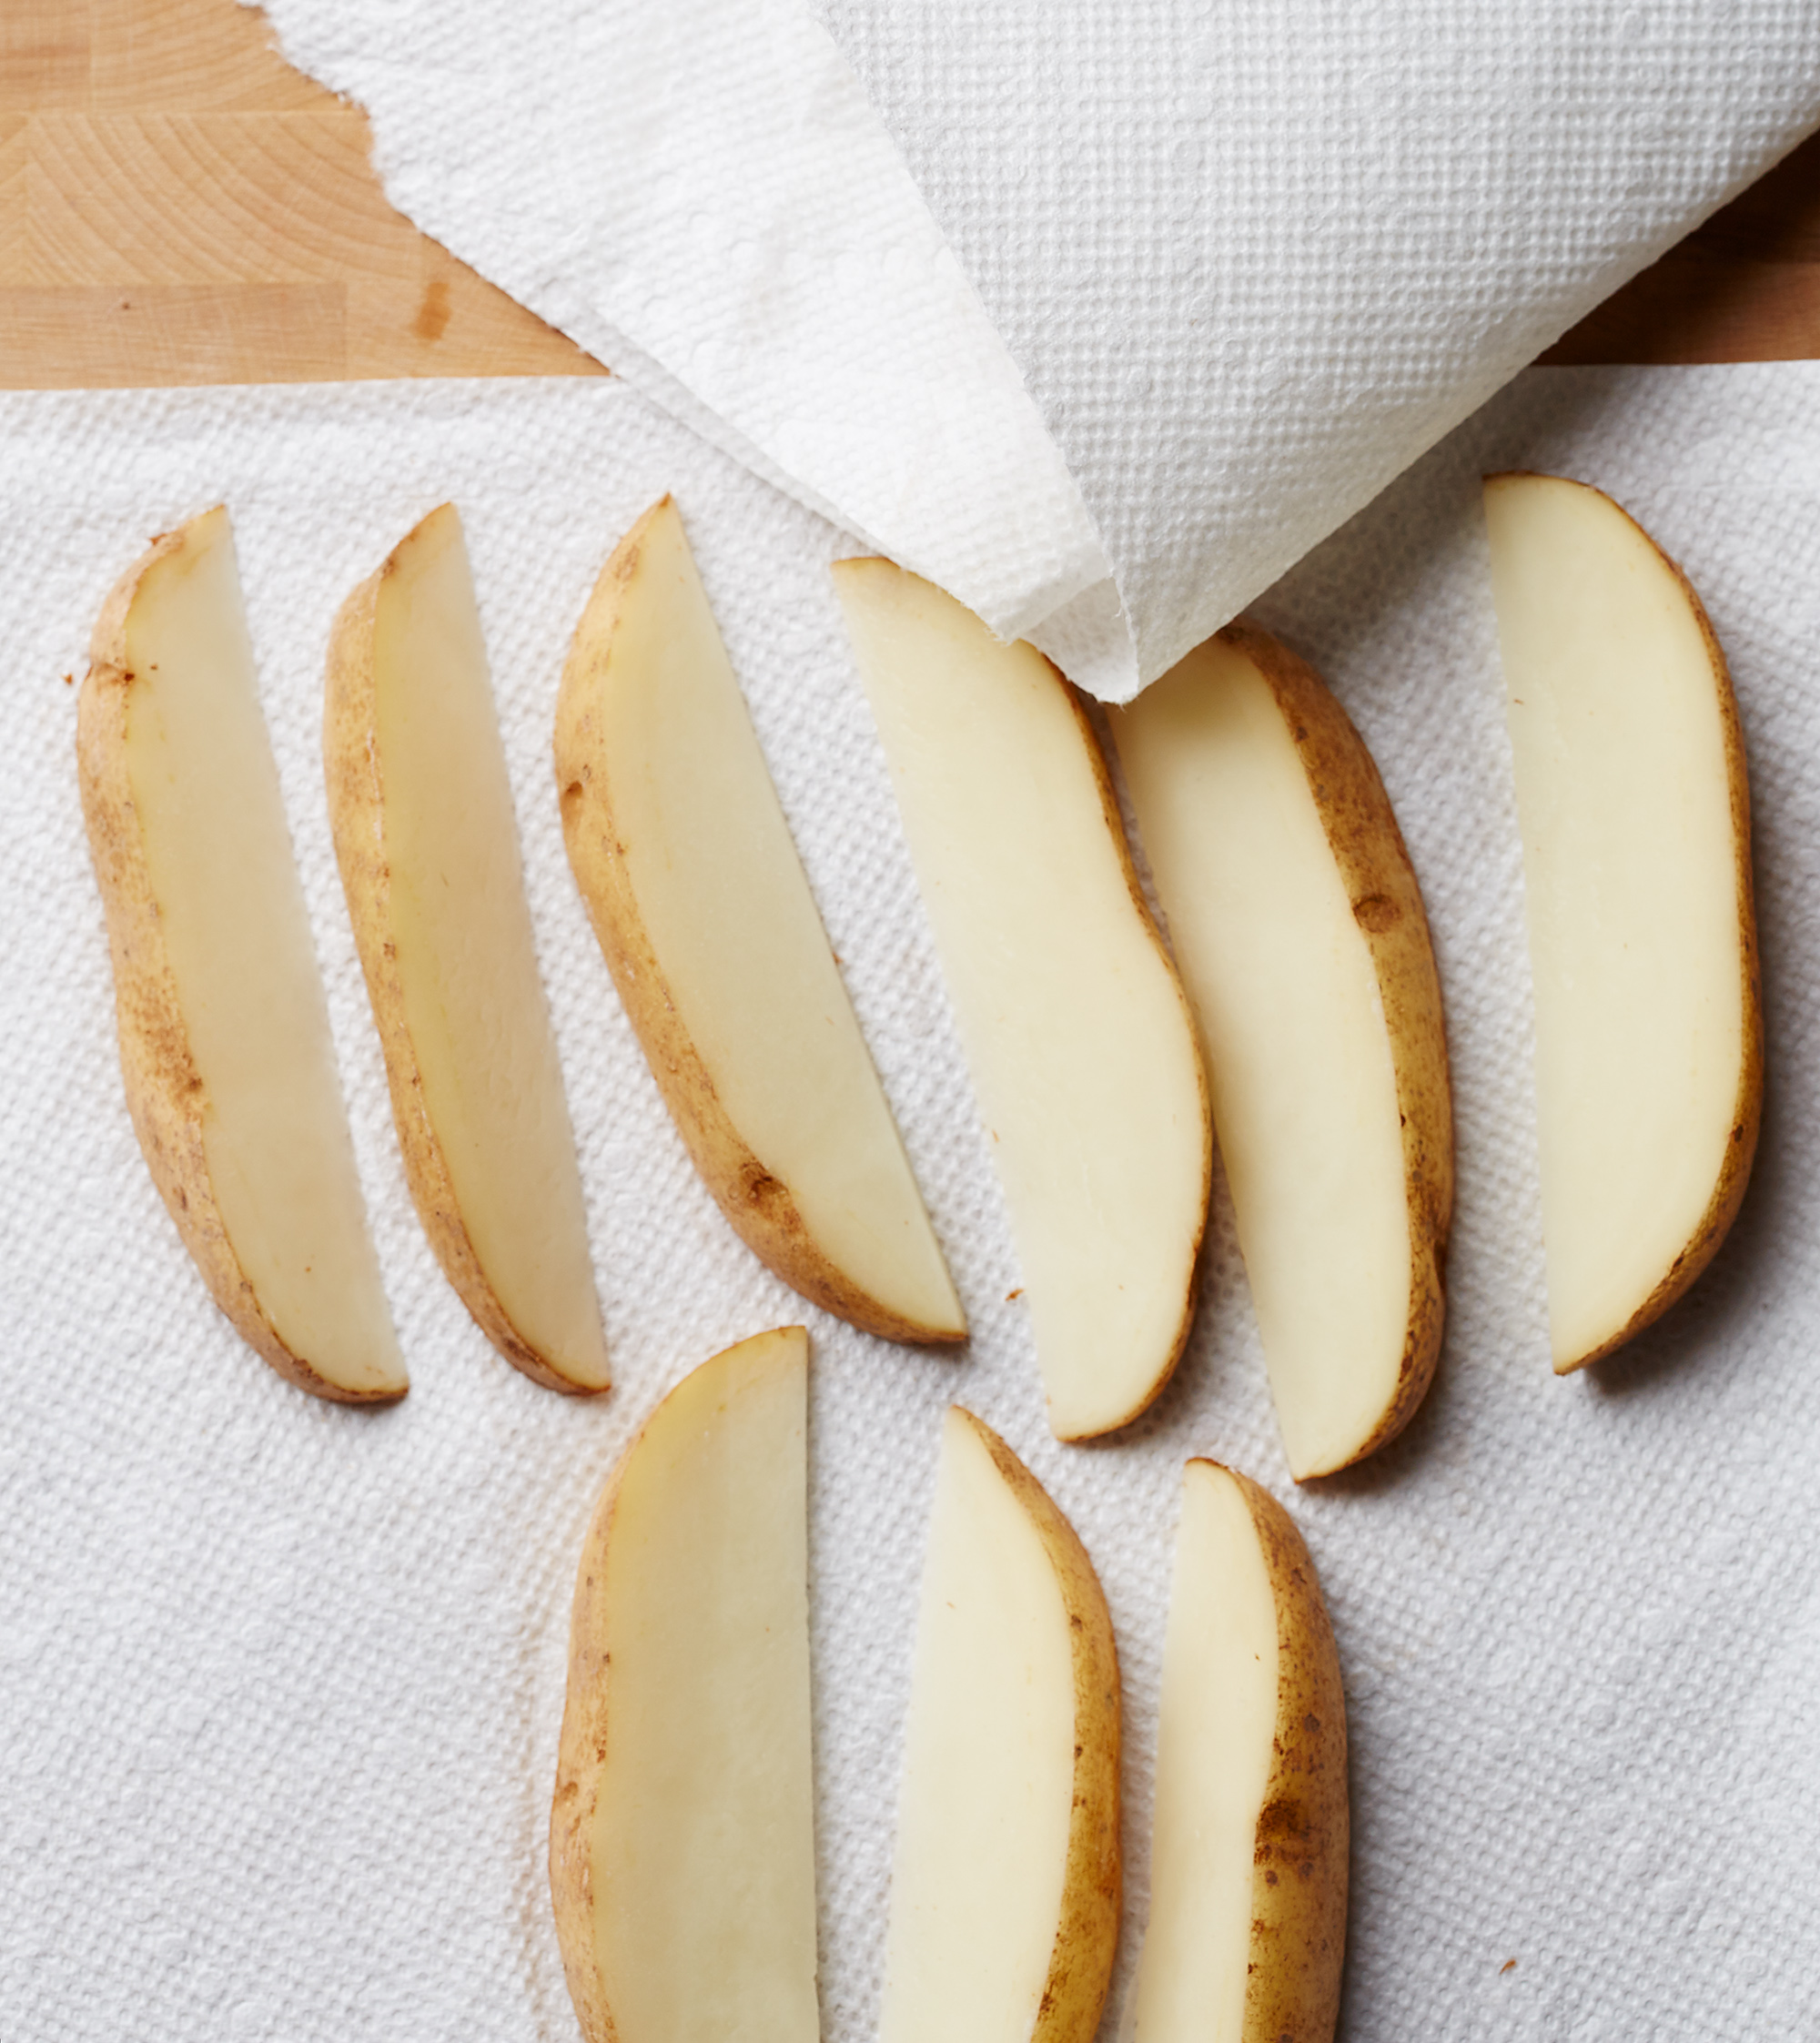 drying potato wedges on paper towels